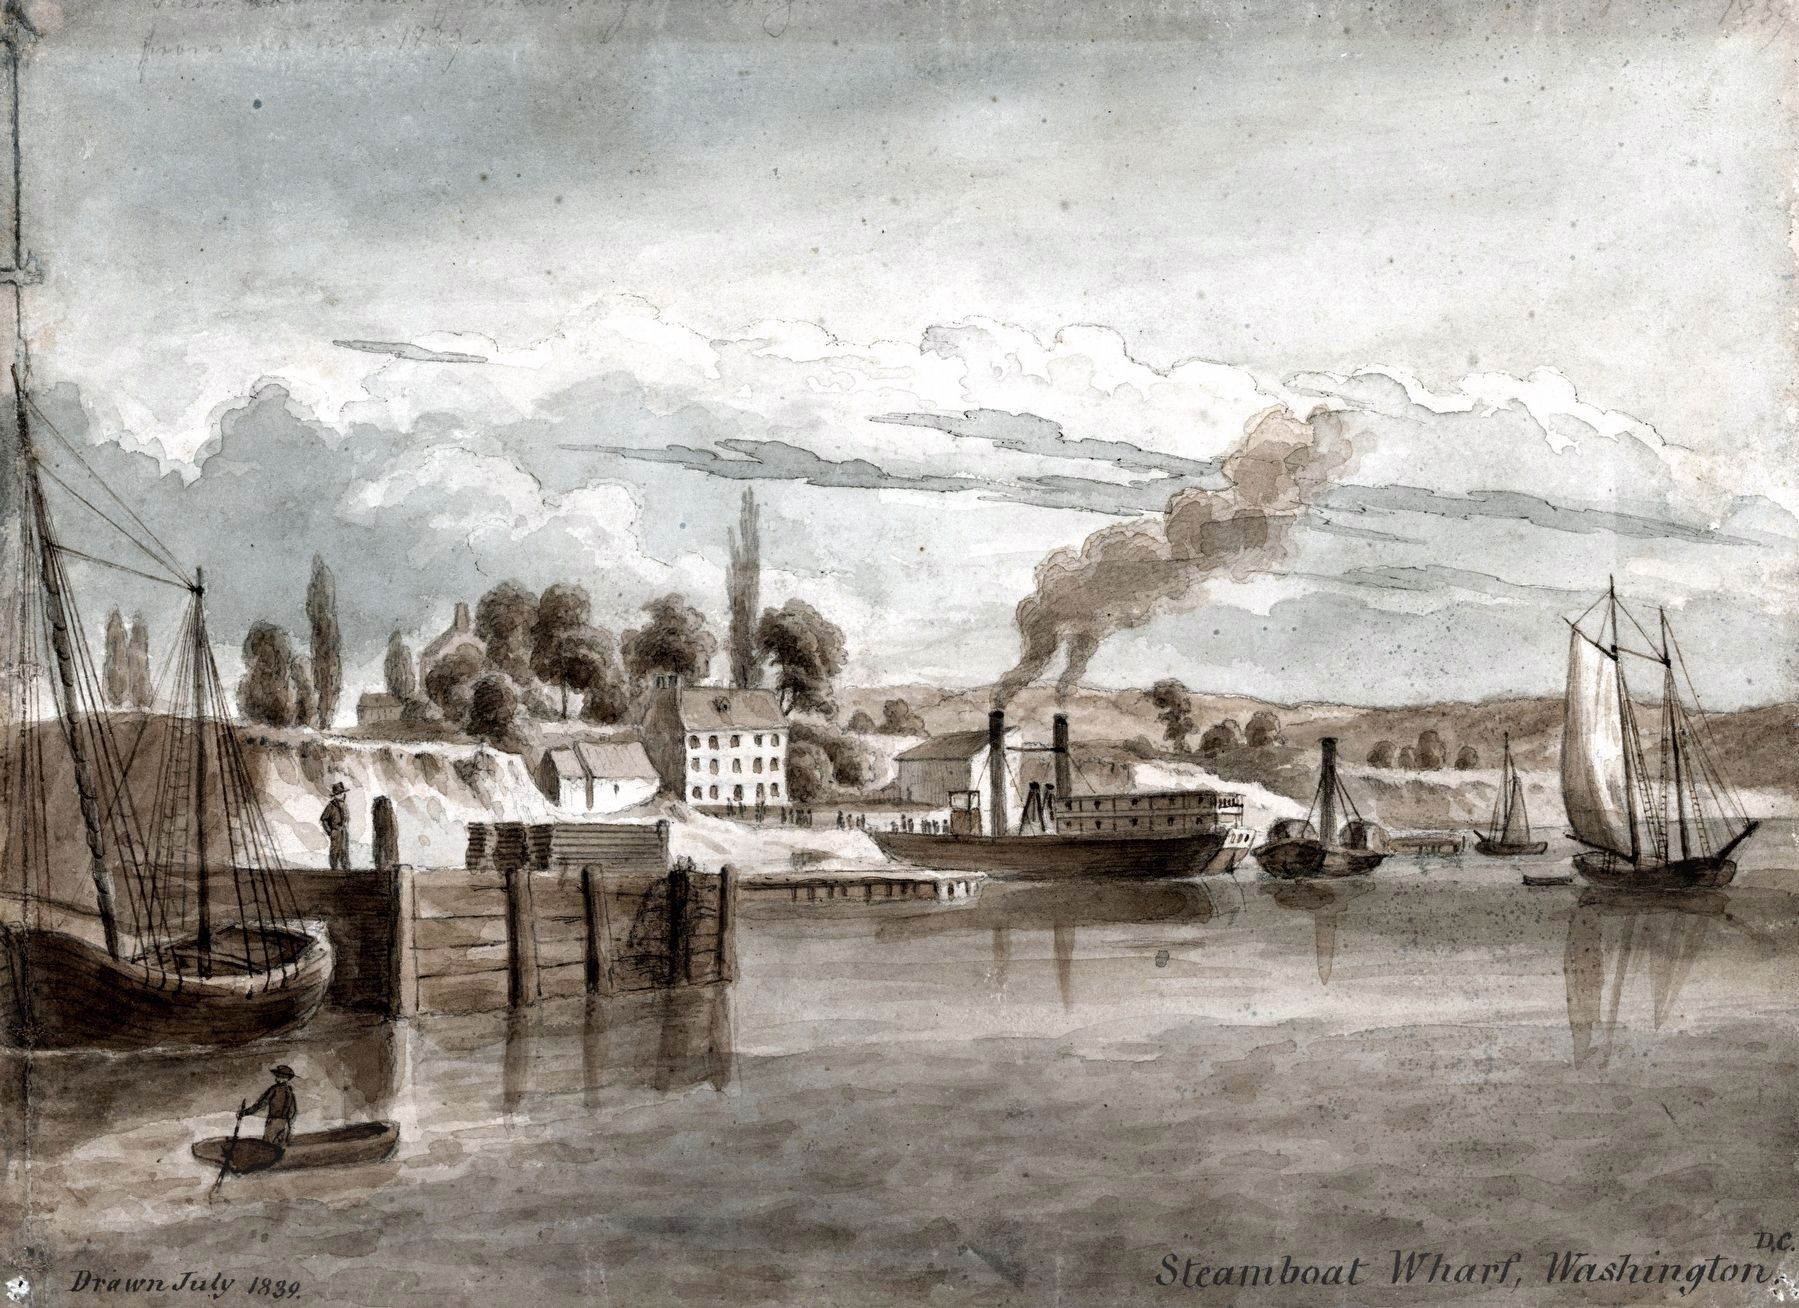 Steamboat Wharf, Washington, D.C.<br>Drawn July 1839 image. Click for full size.